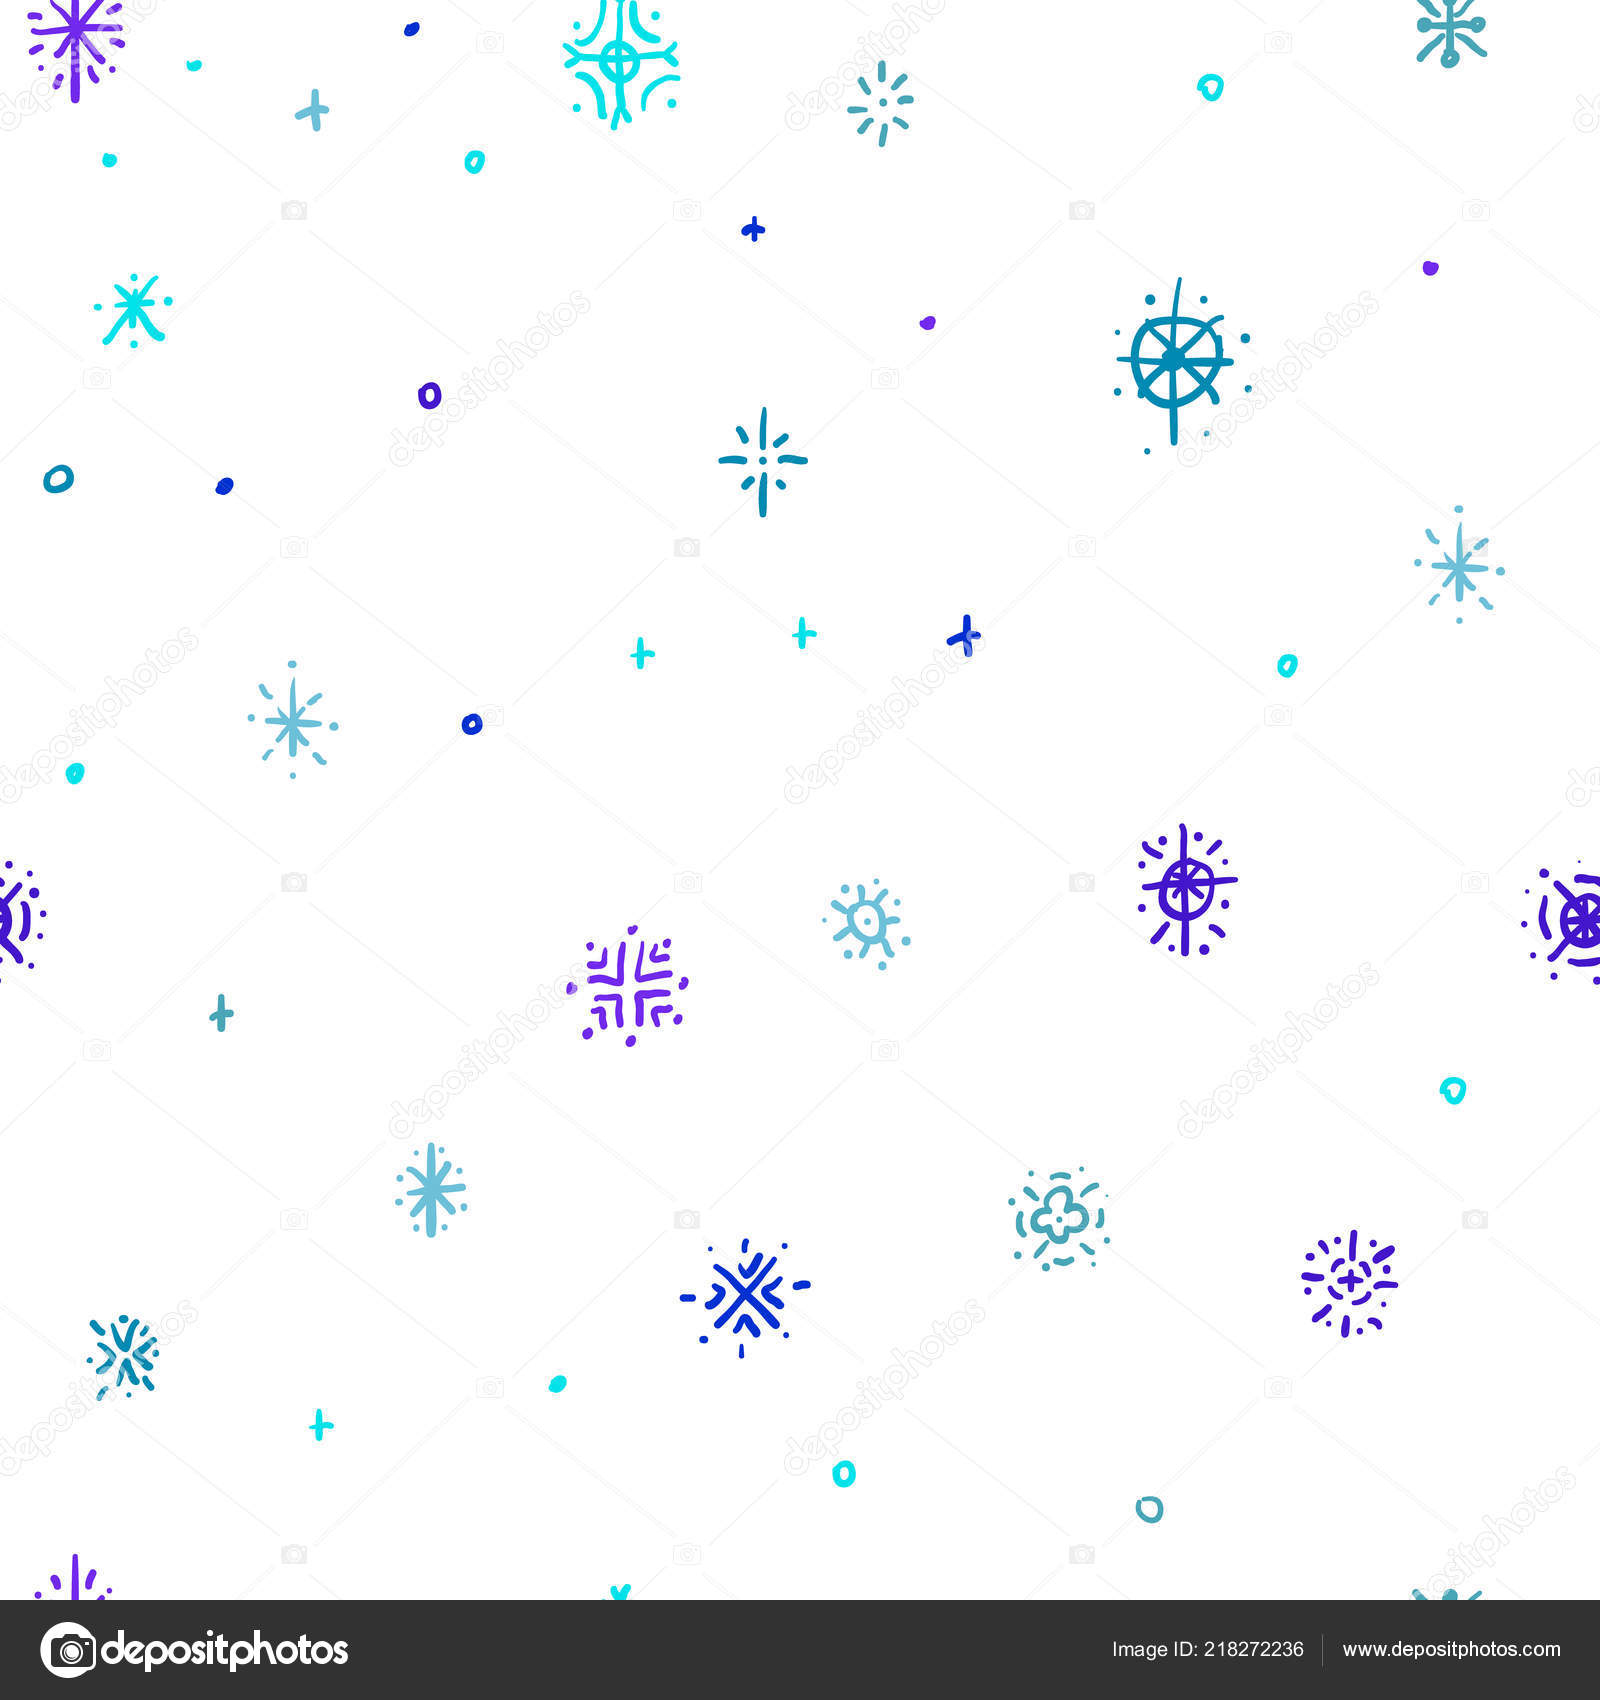 Winter Doodles Hand Drawn Snowflakes Doodles Seamless